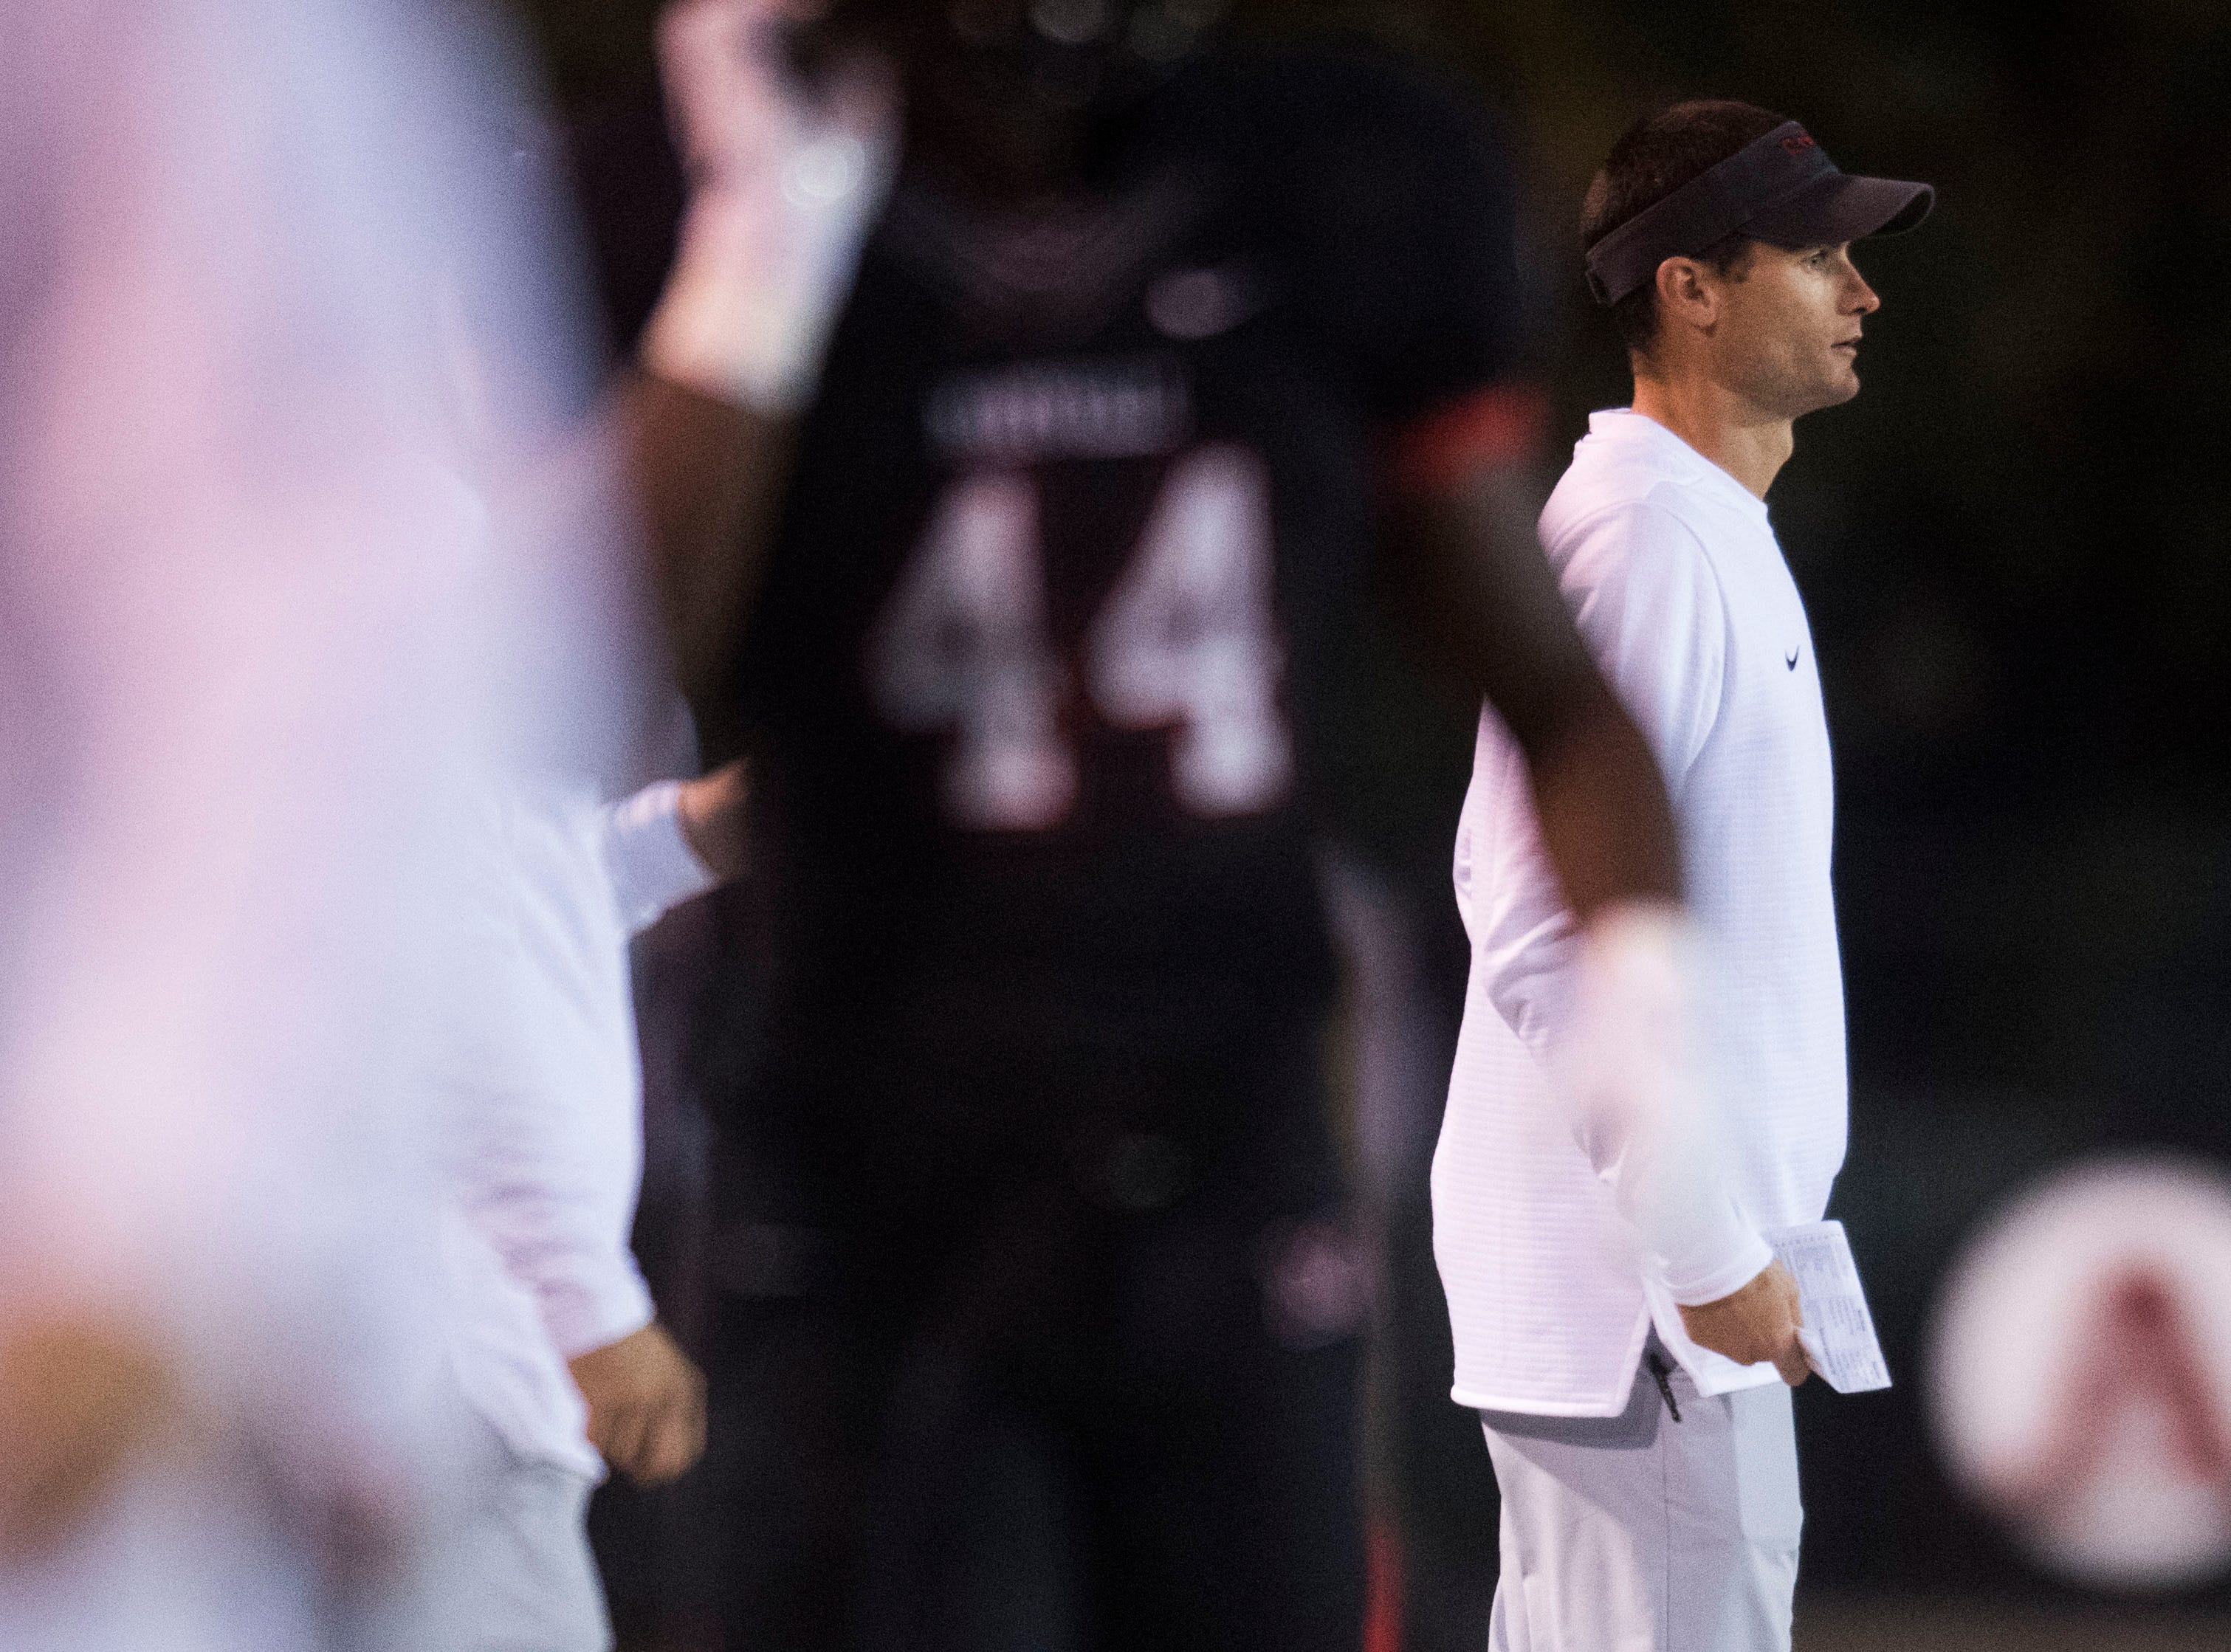 Maryville Head Coach Derek Hunt stands on the sidelines during a first round playoff game between Maryville and Bearden at Maryville, Friday, Nov. 2, 2018. Maryville defeated Bearden 28-7.